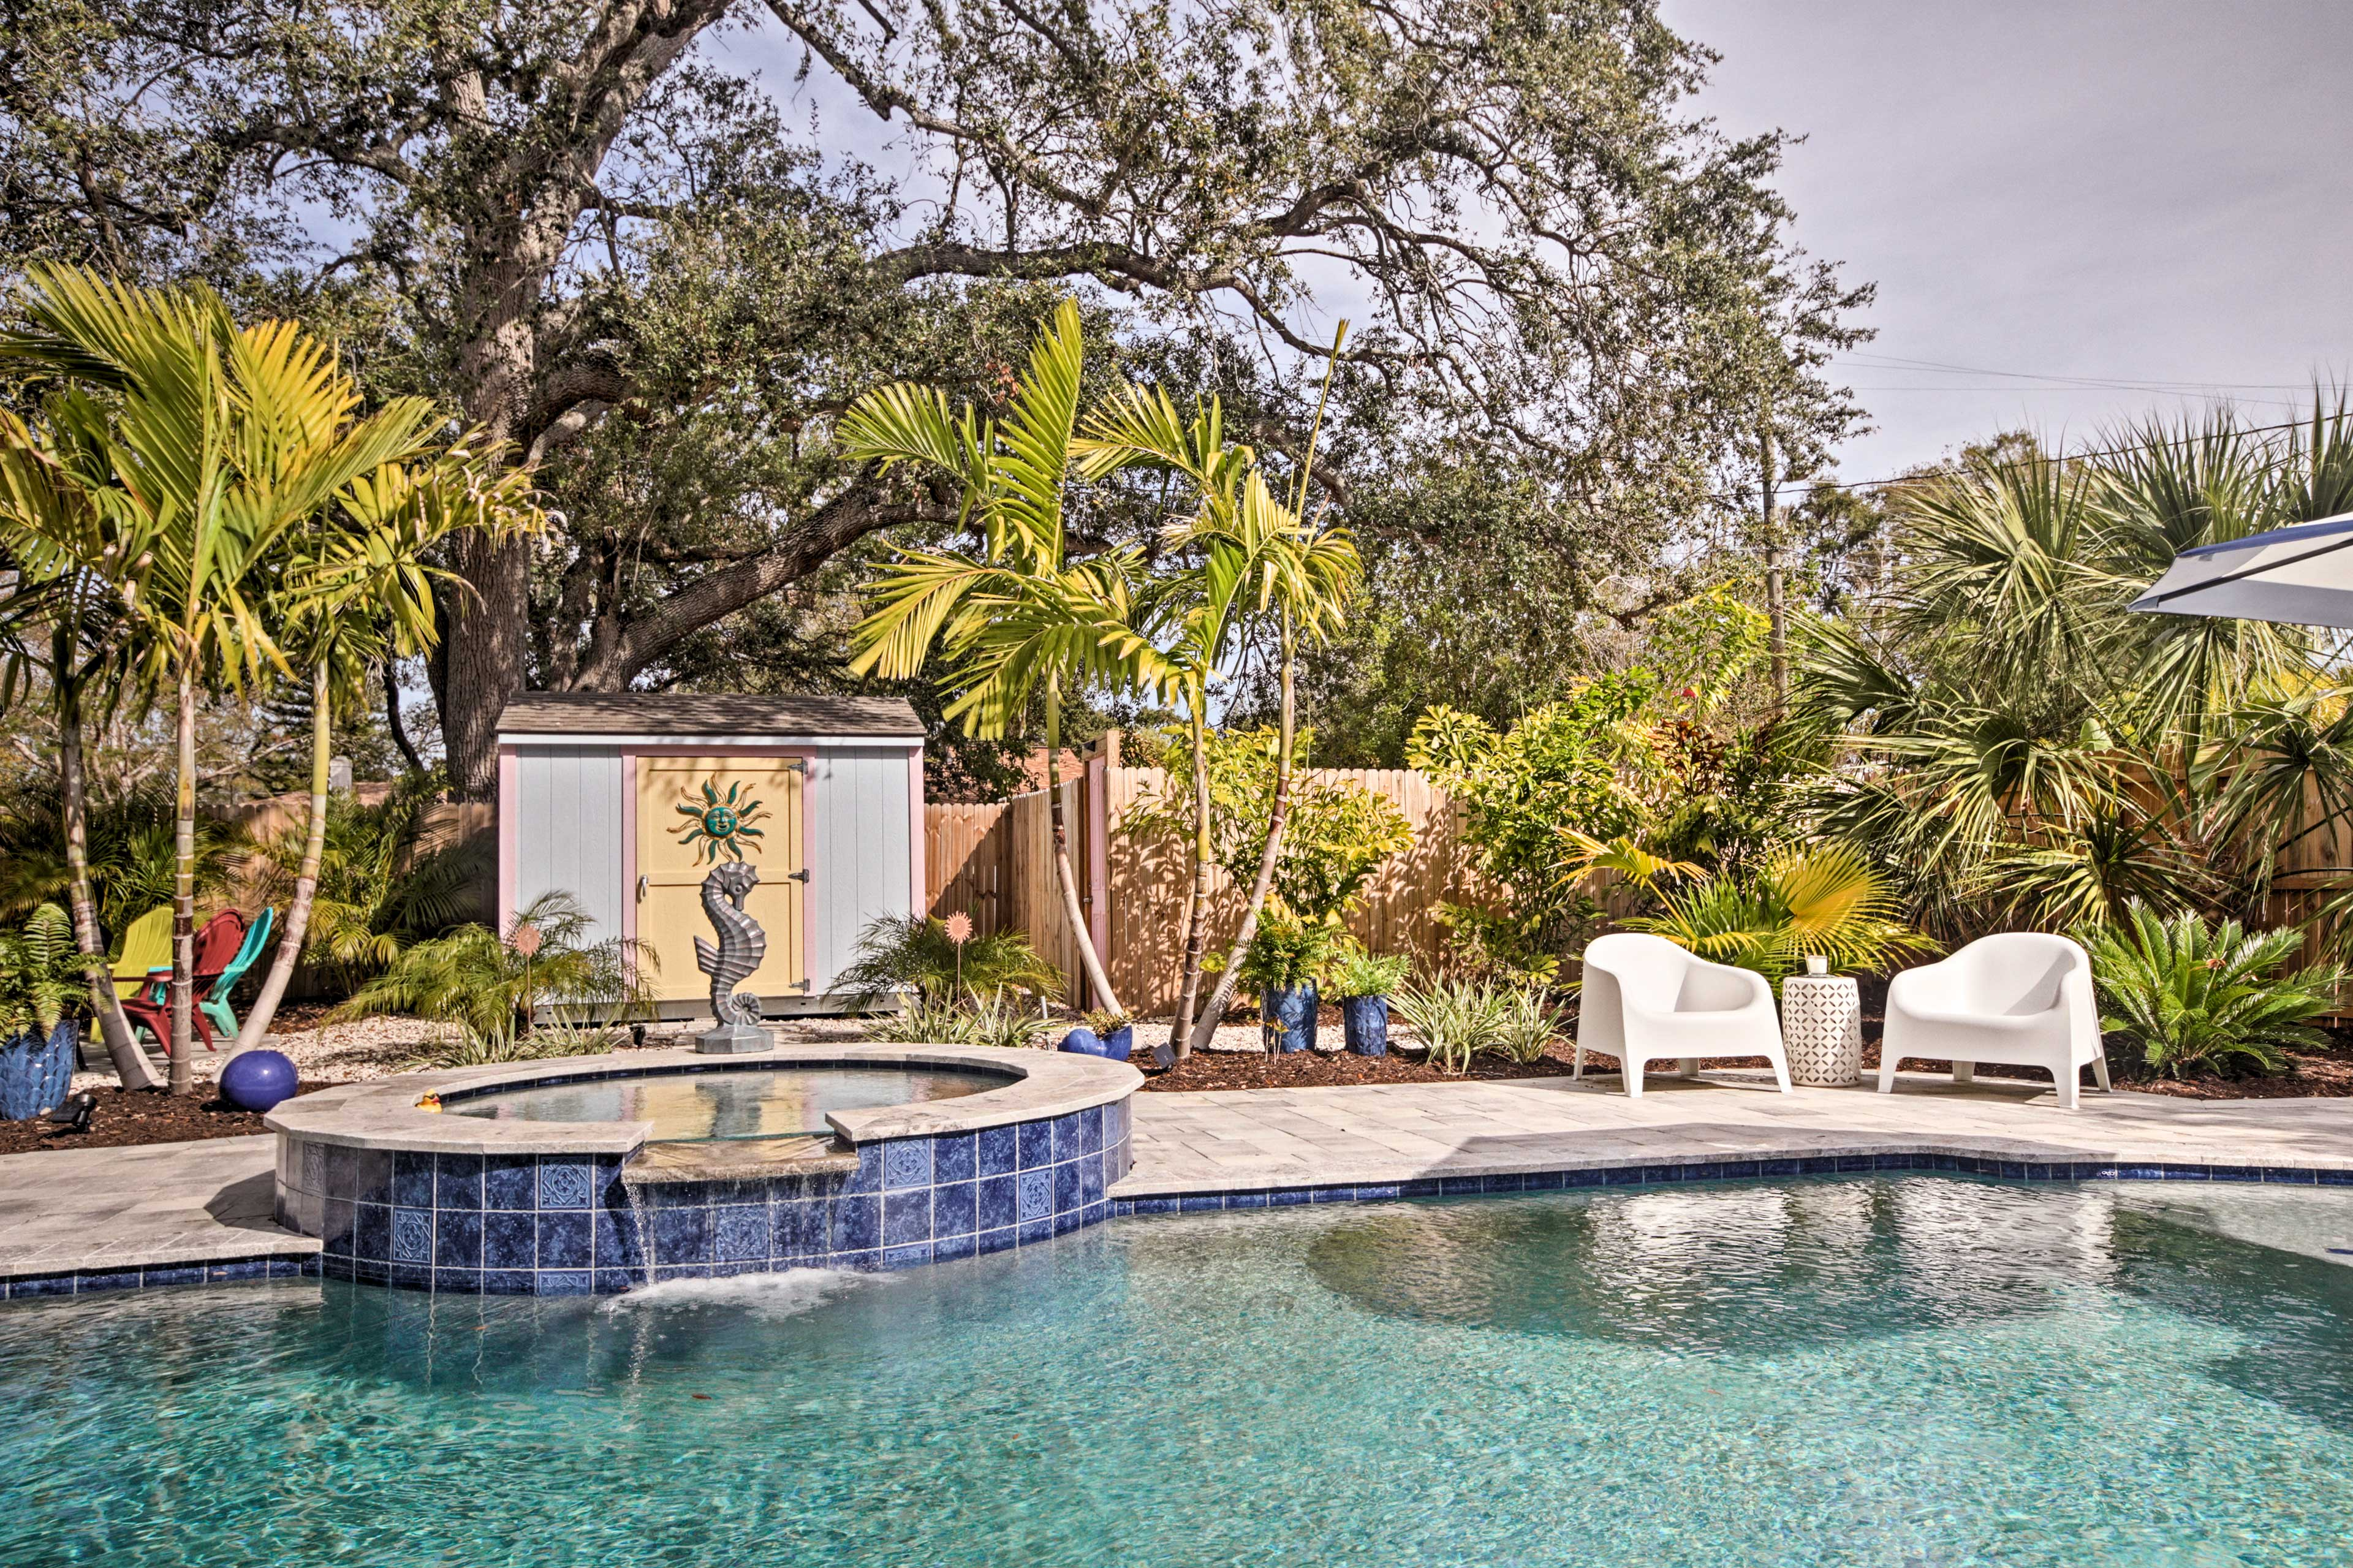 Keep things cool in the pool or turn up the heat in the hot tub.